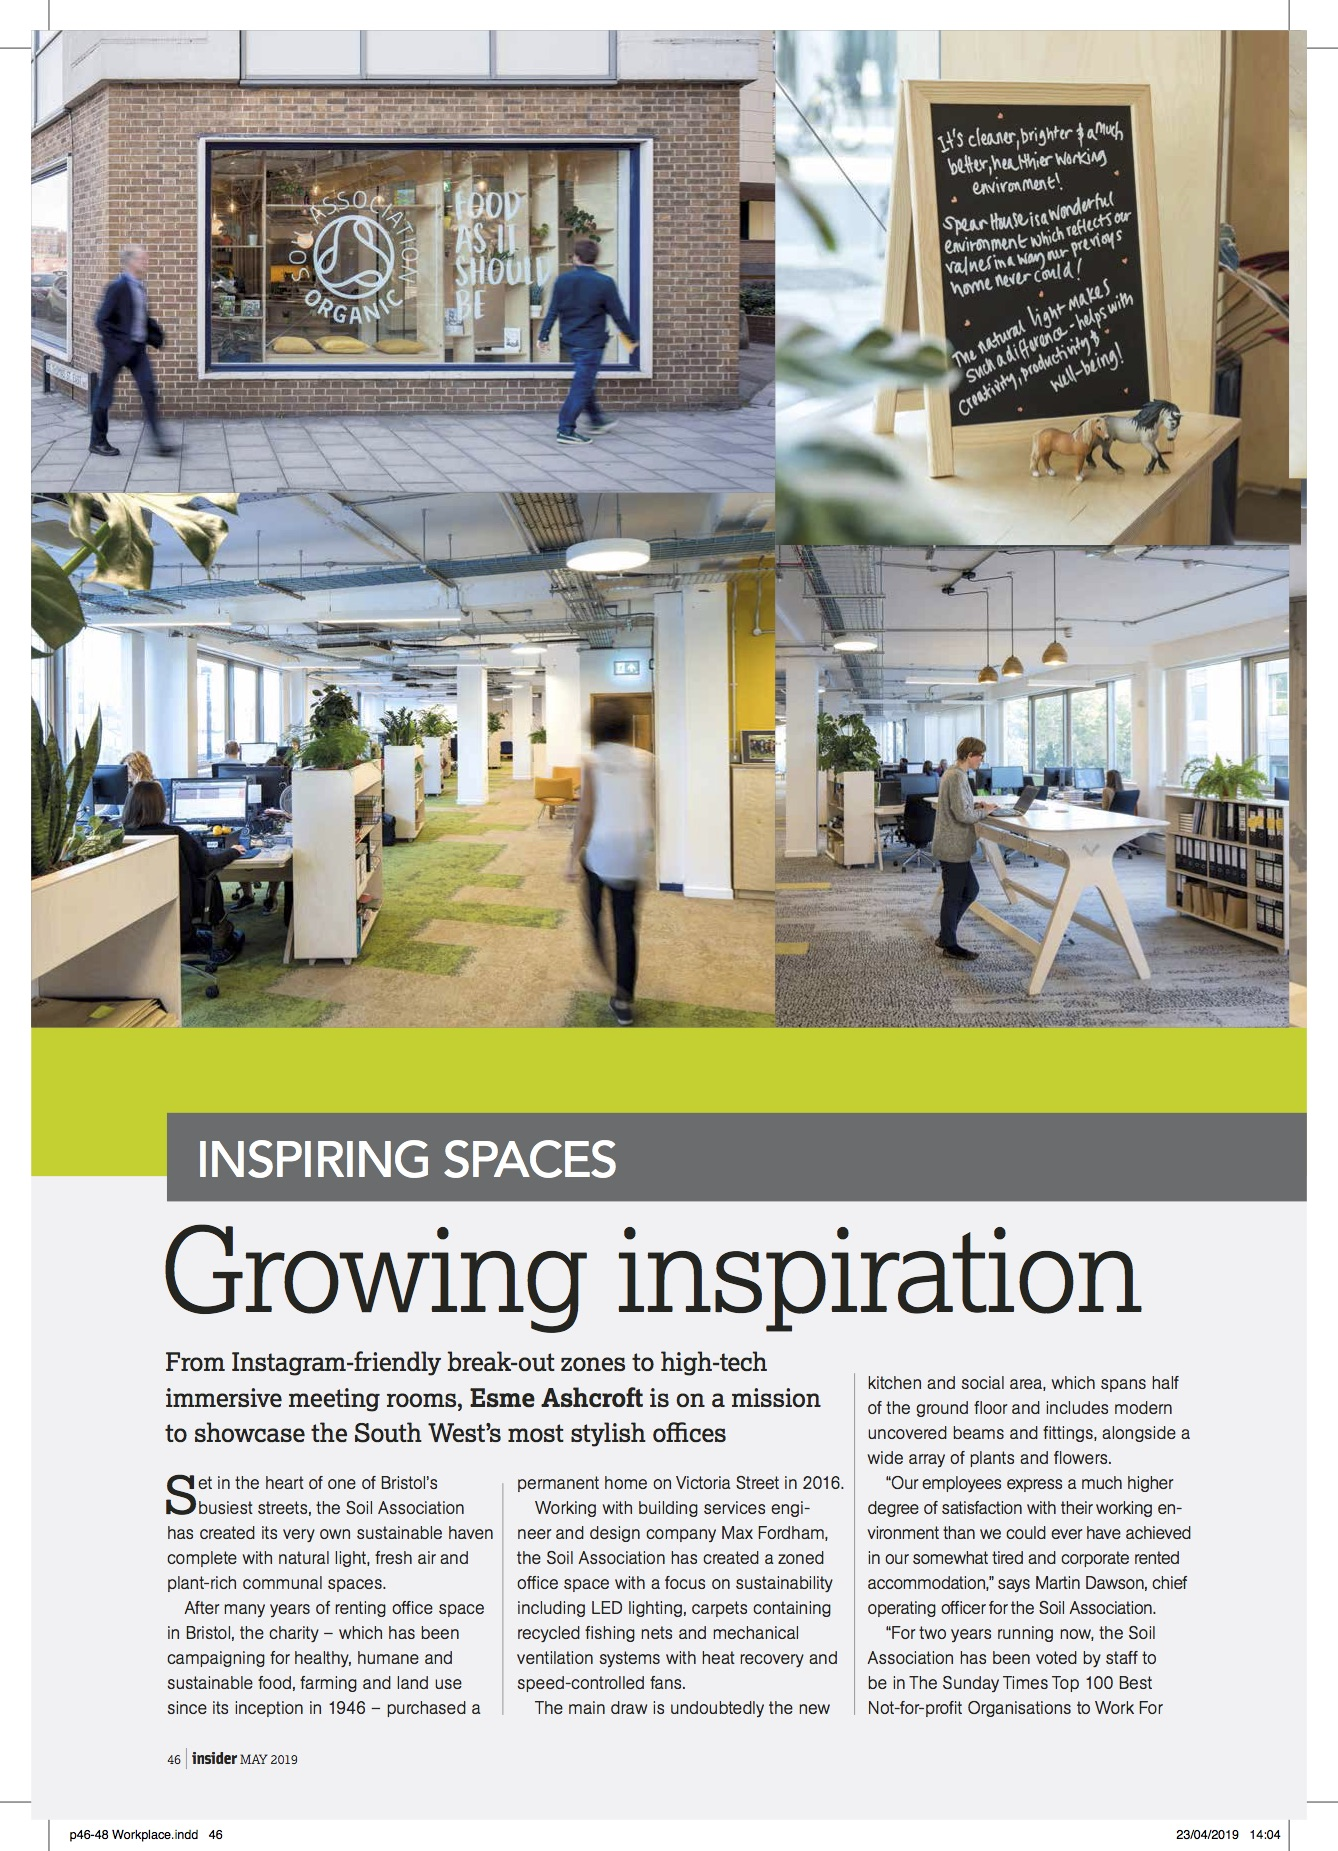 Insider 23.04.19 SA's office is an inspiring sustainable space 1.jpg